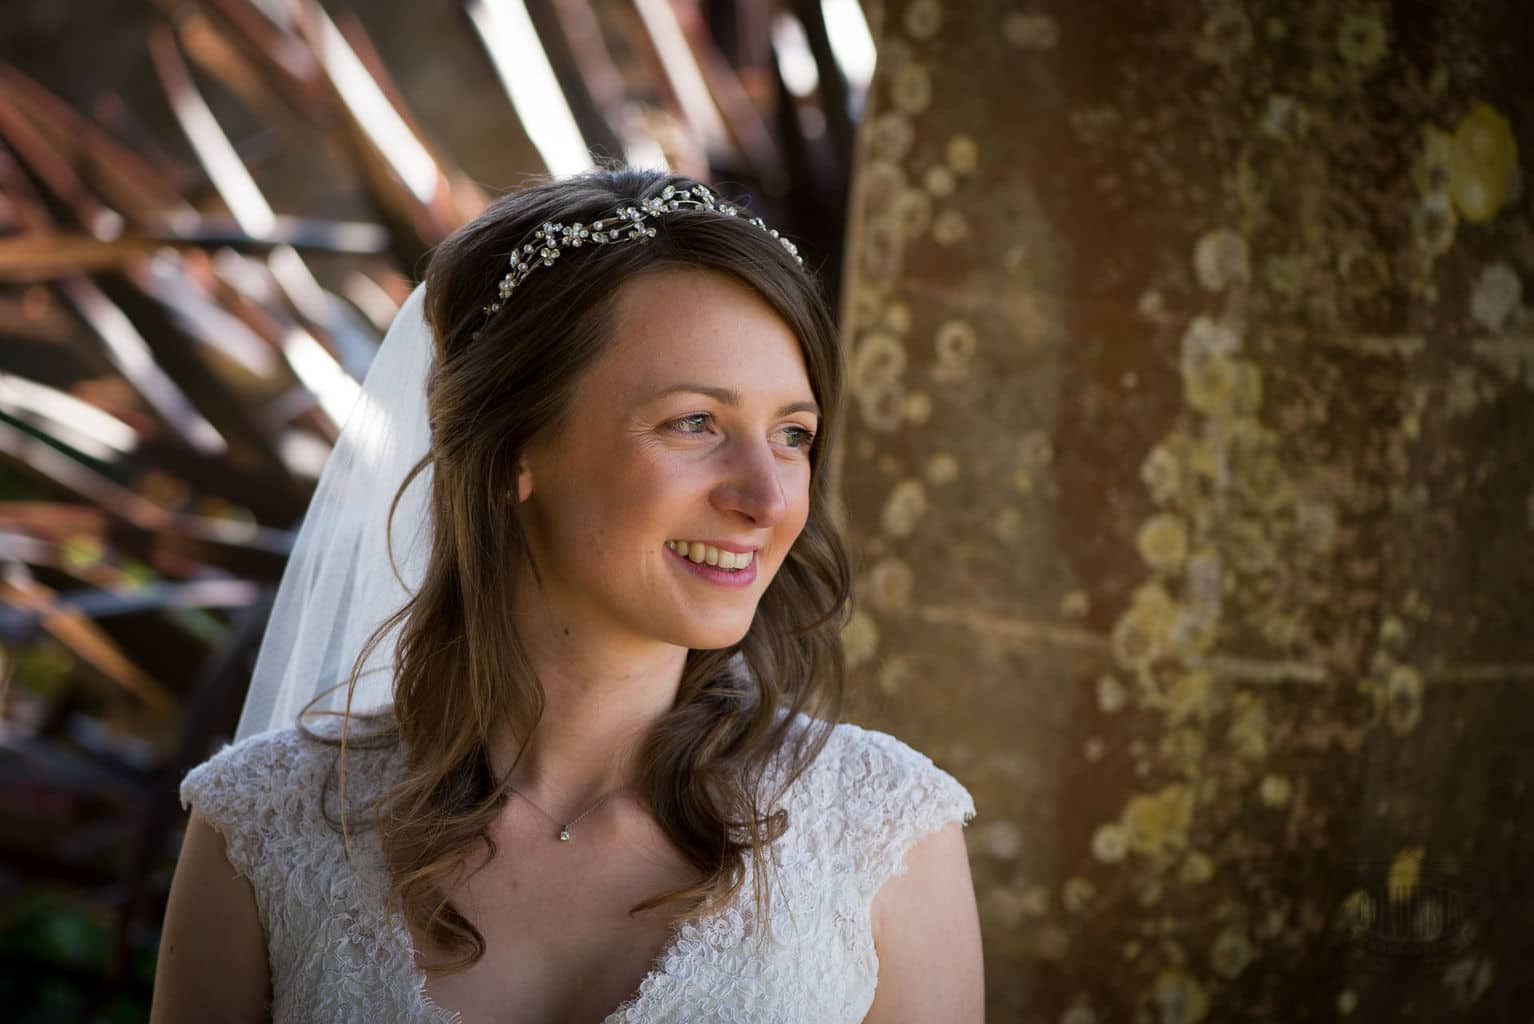 Bride at Athelhampton House wedding venue, Dorset